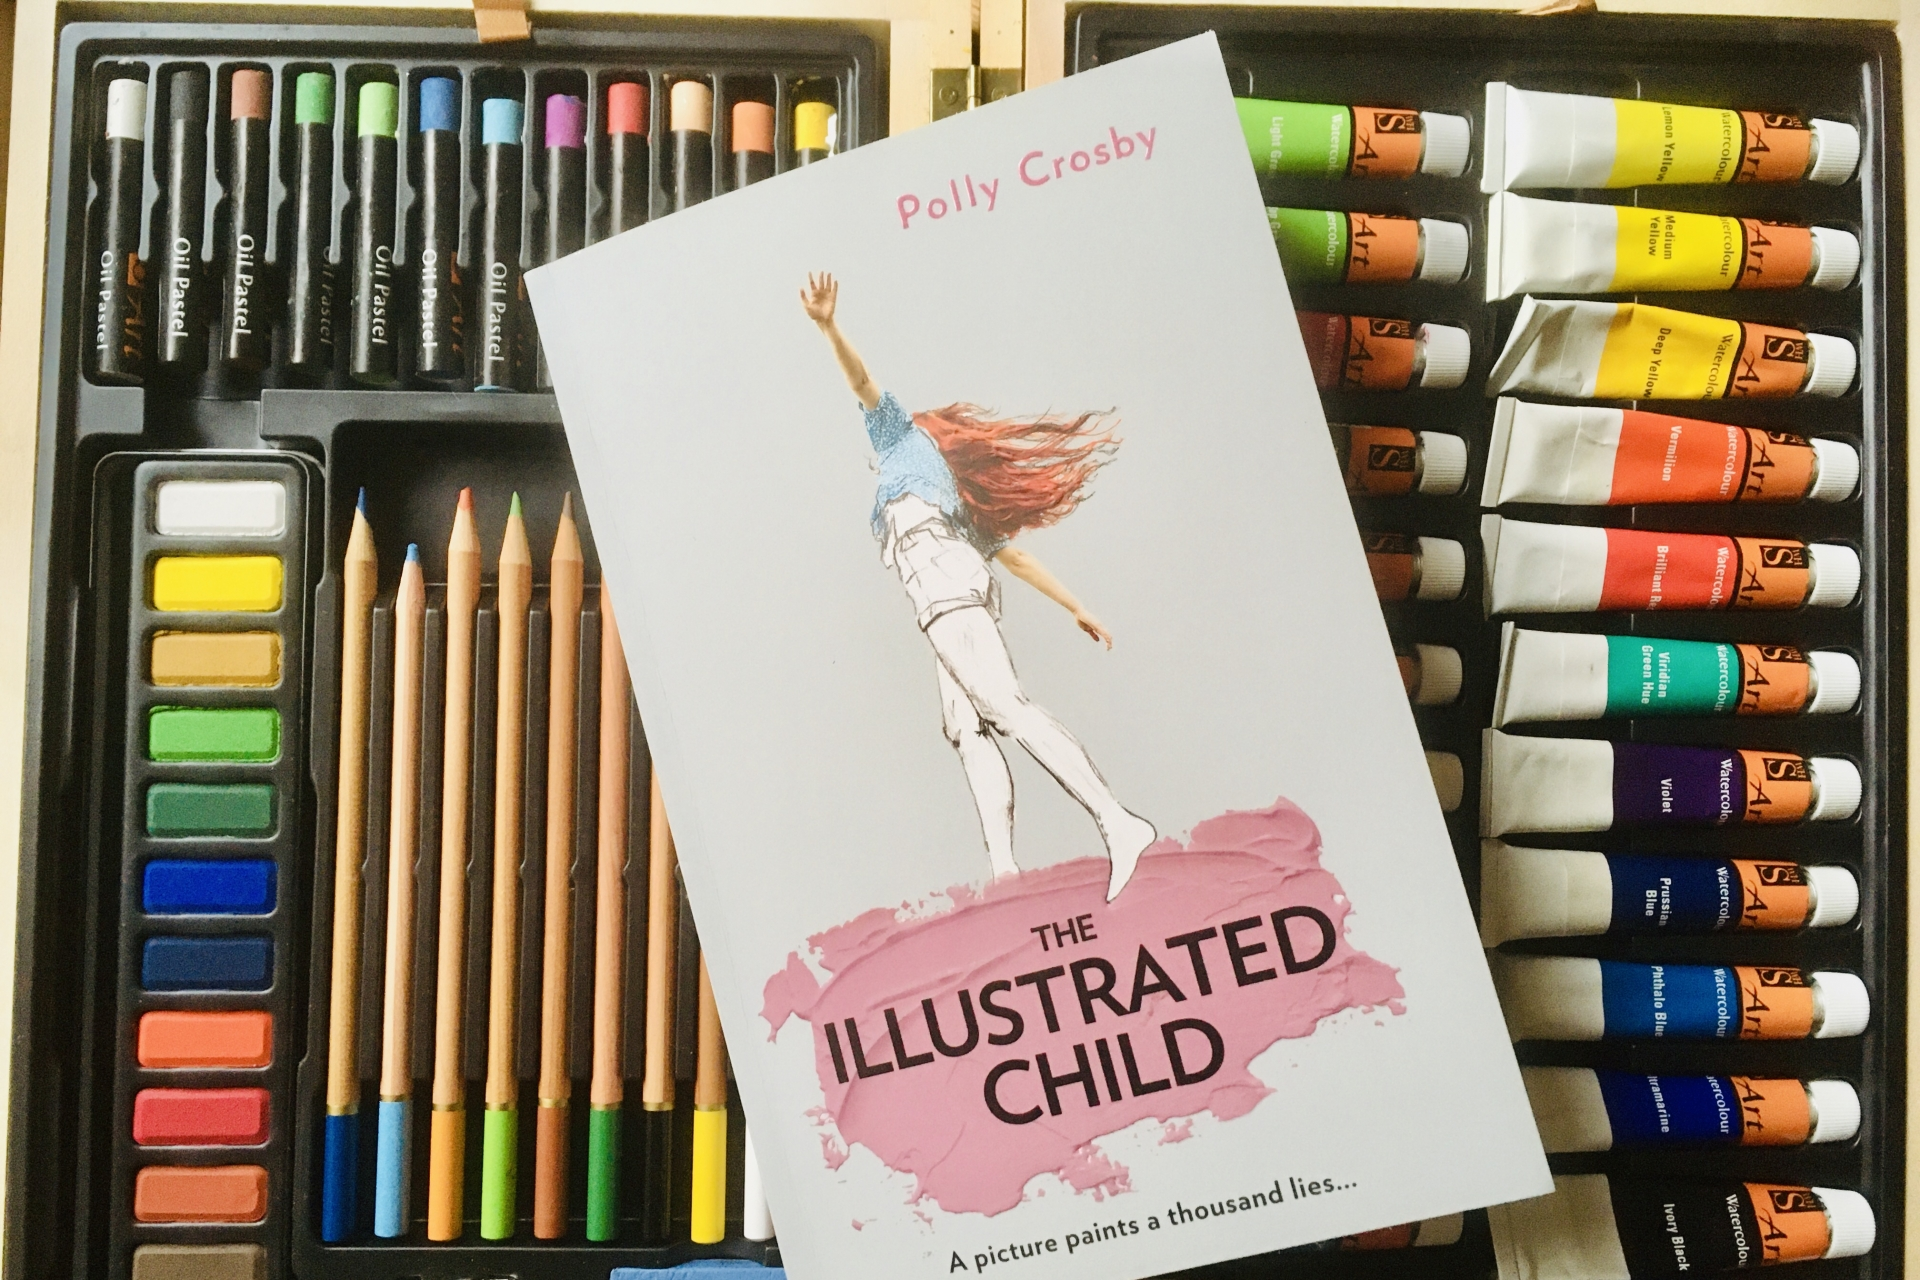 November 2020 Book Club Recommendation: The Illustrated Child by Polly Crosby